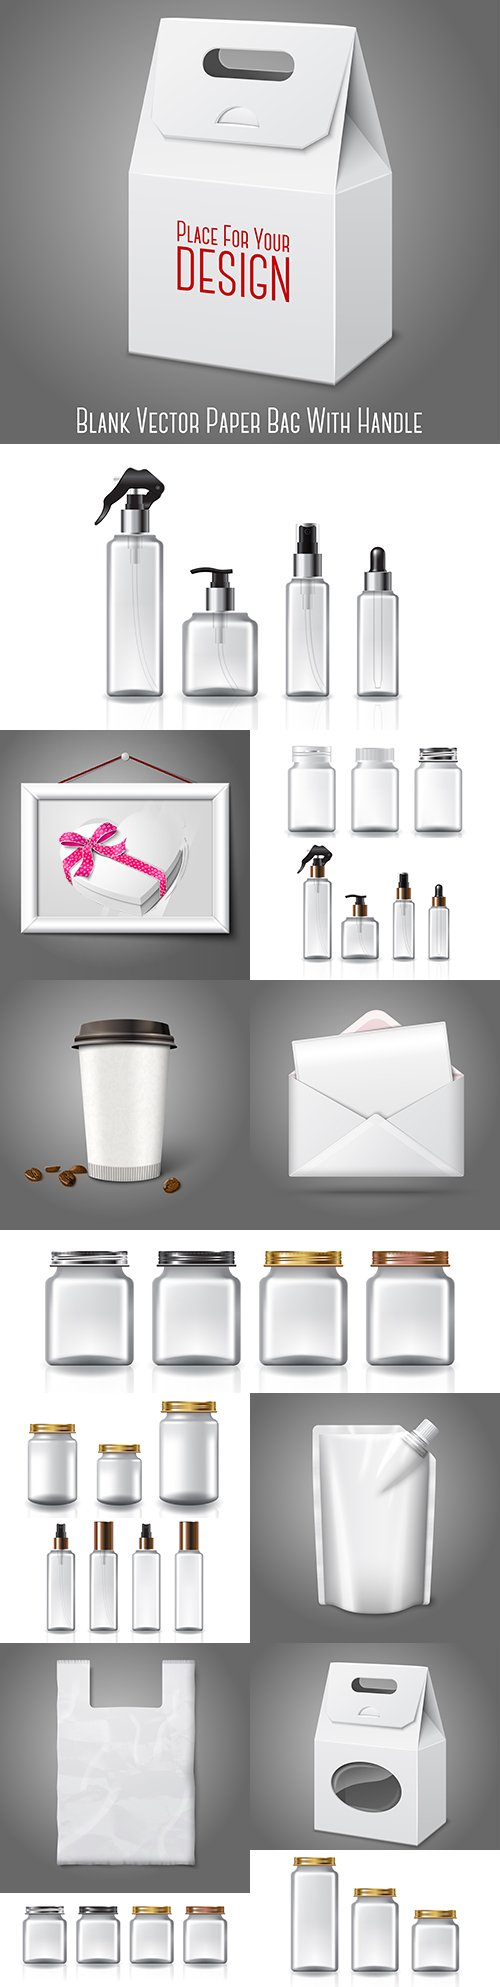 Cardboard and plastic packaging and bottle illustration templates